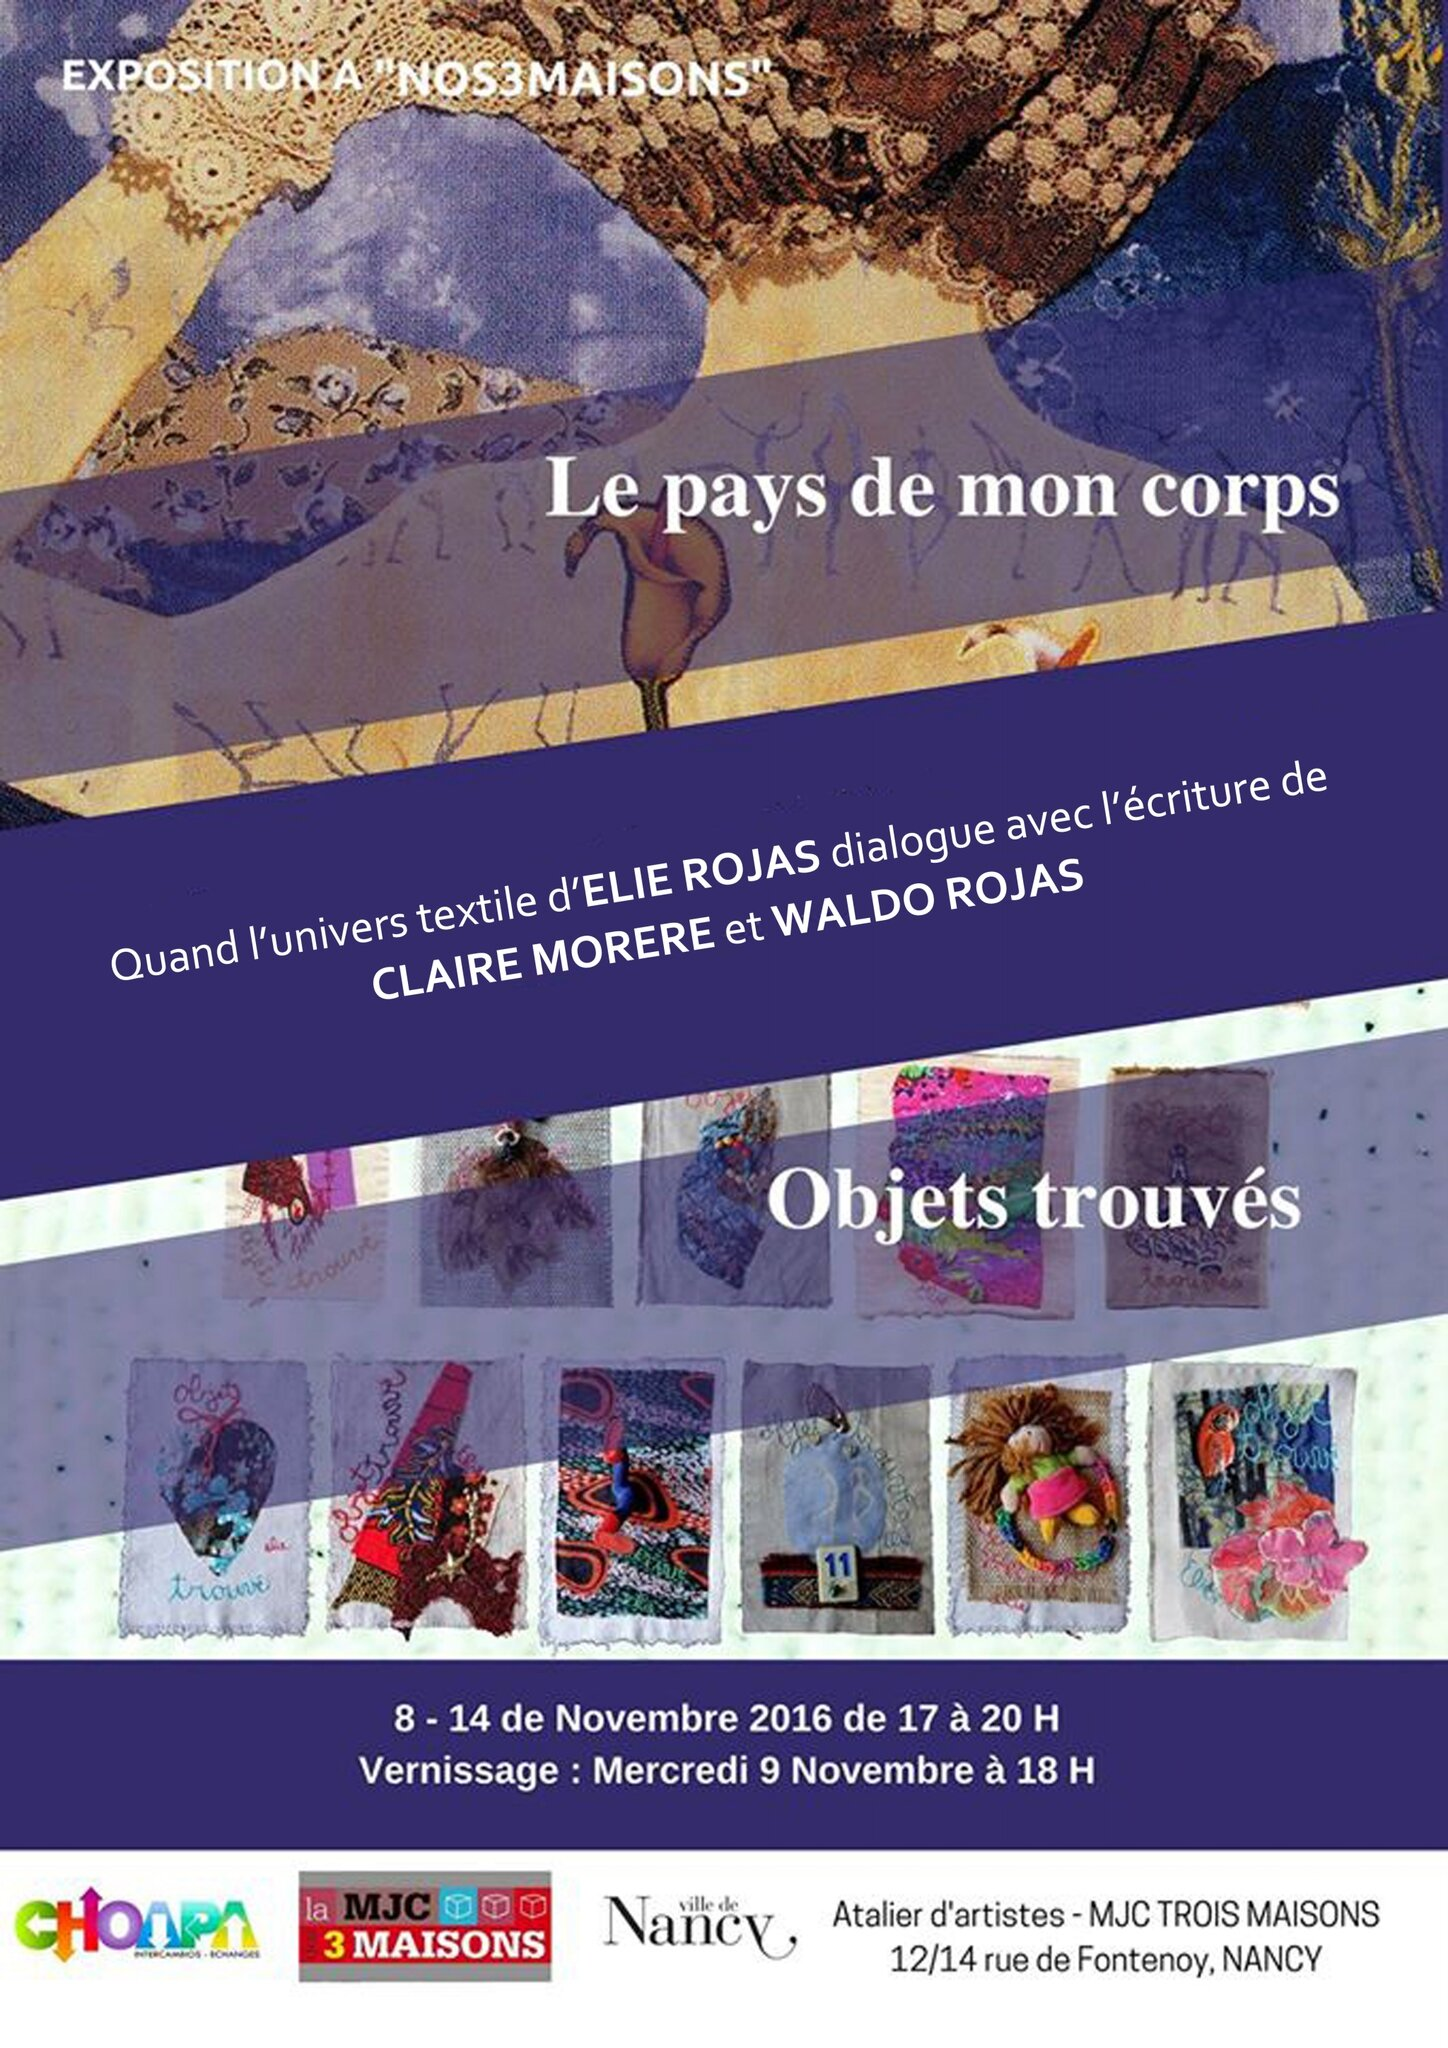 Exposition à NANCY du 8 au 14 novembre 2016